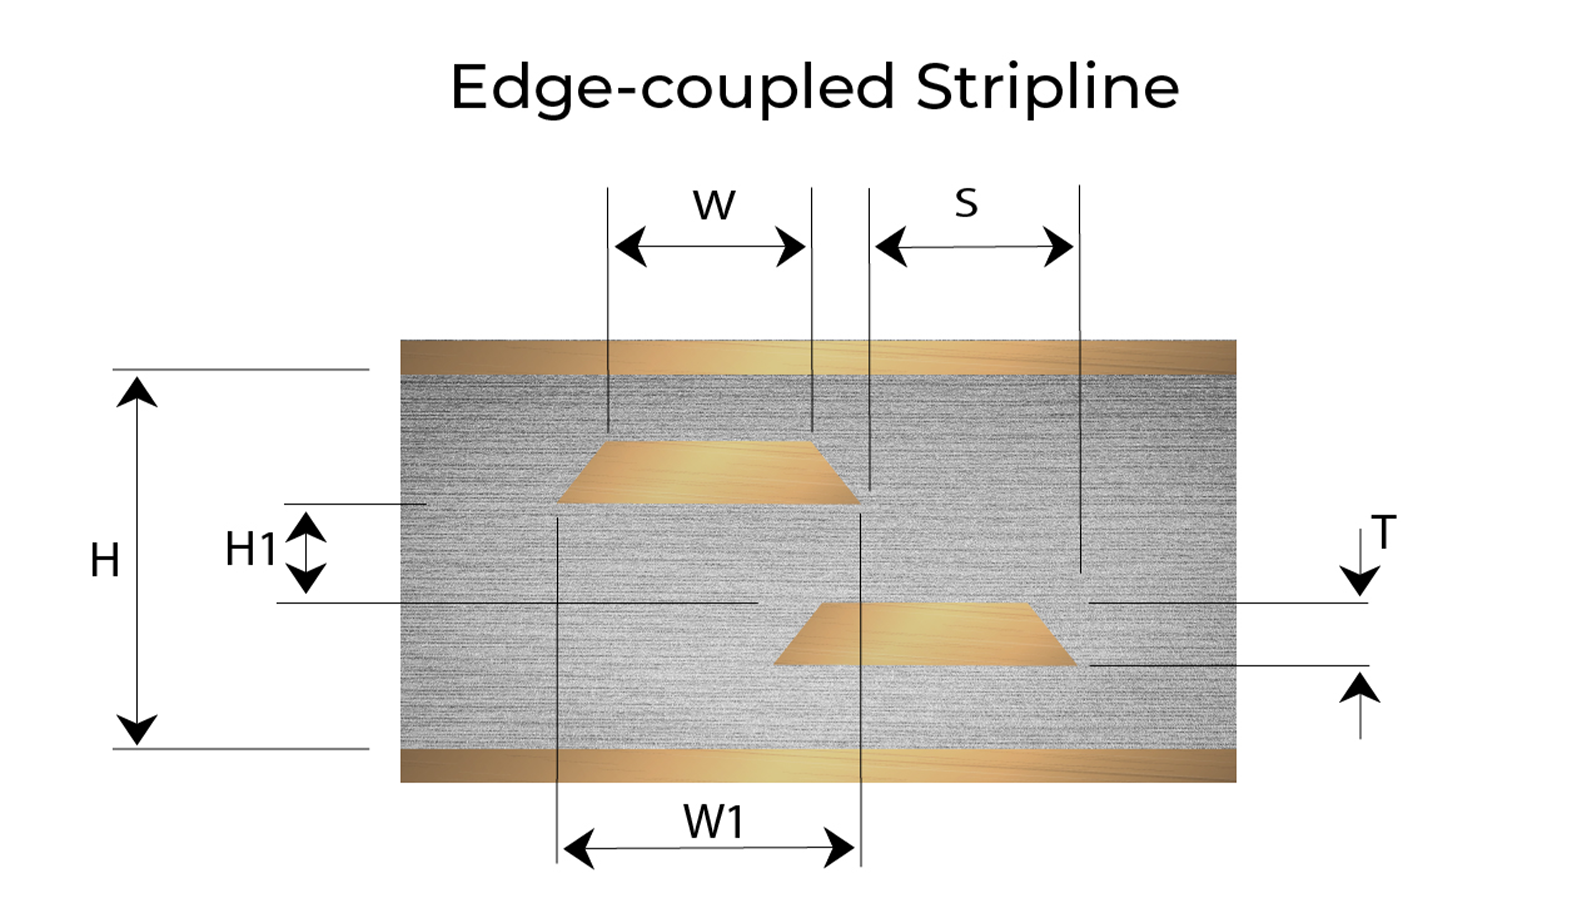 Edge-coupled Stripline